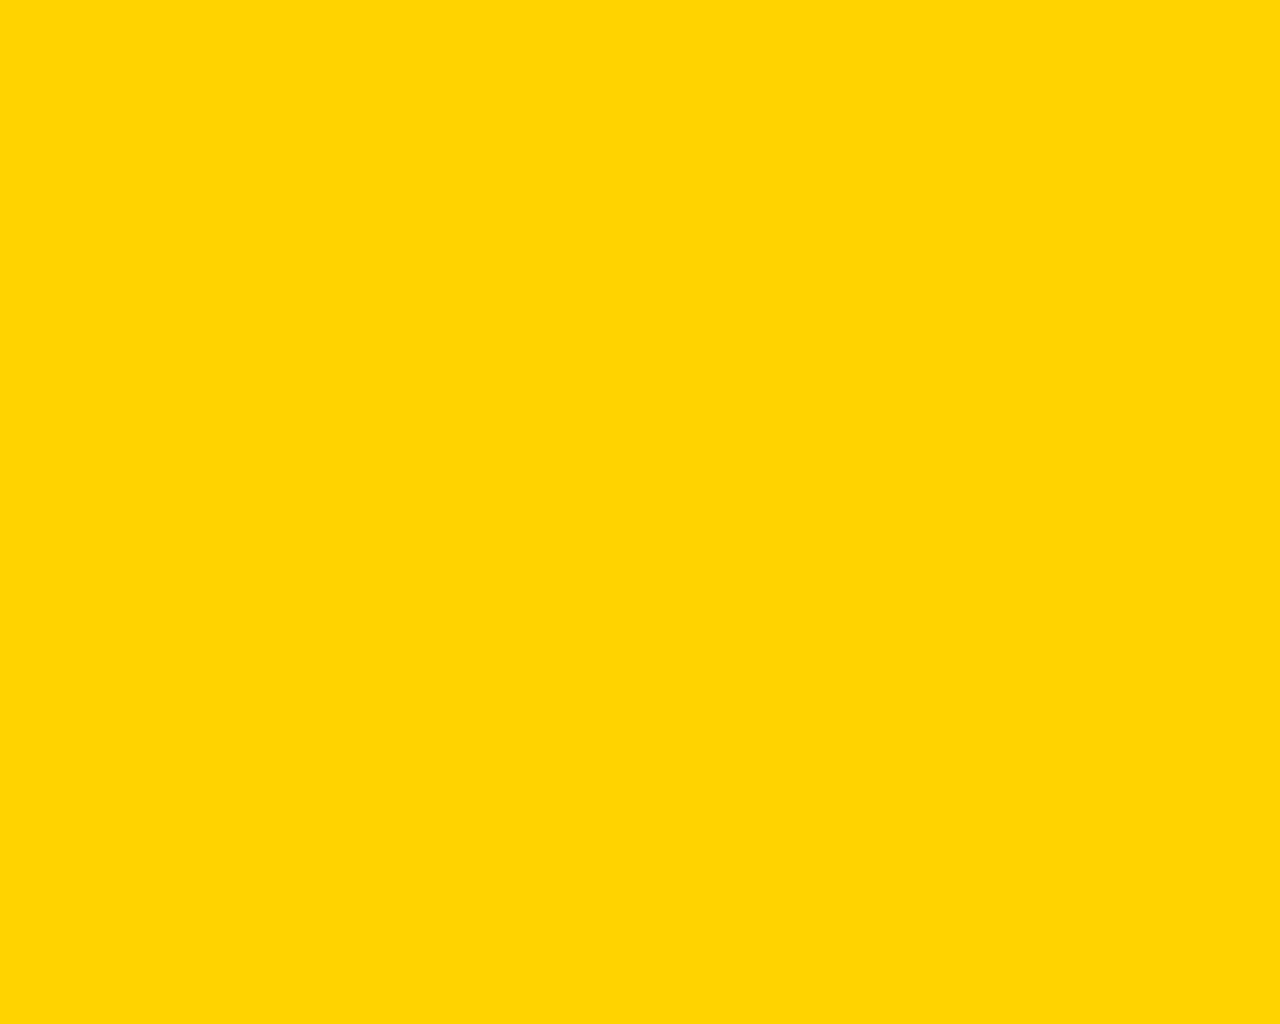 1280x1024 Cyber Yellow Solid Color Background